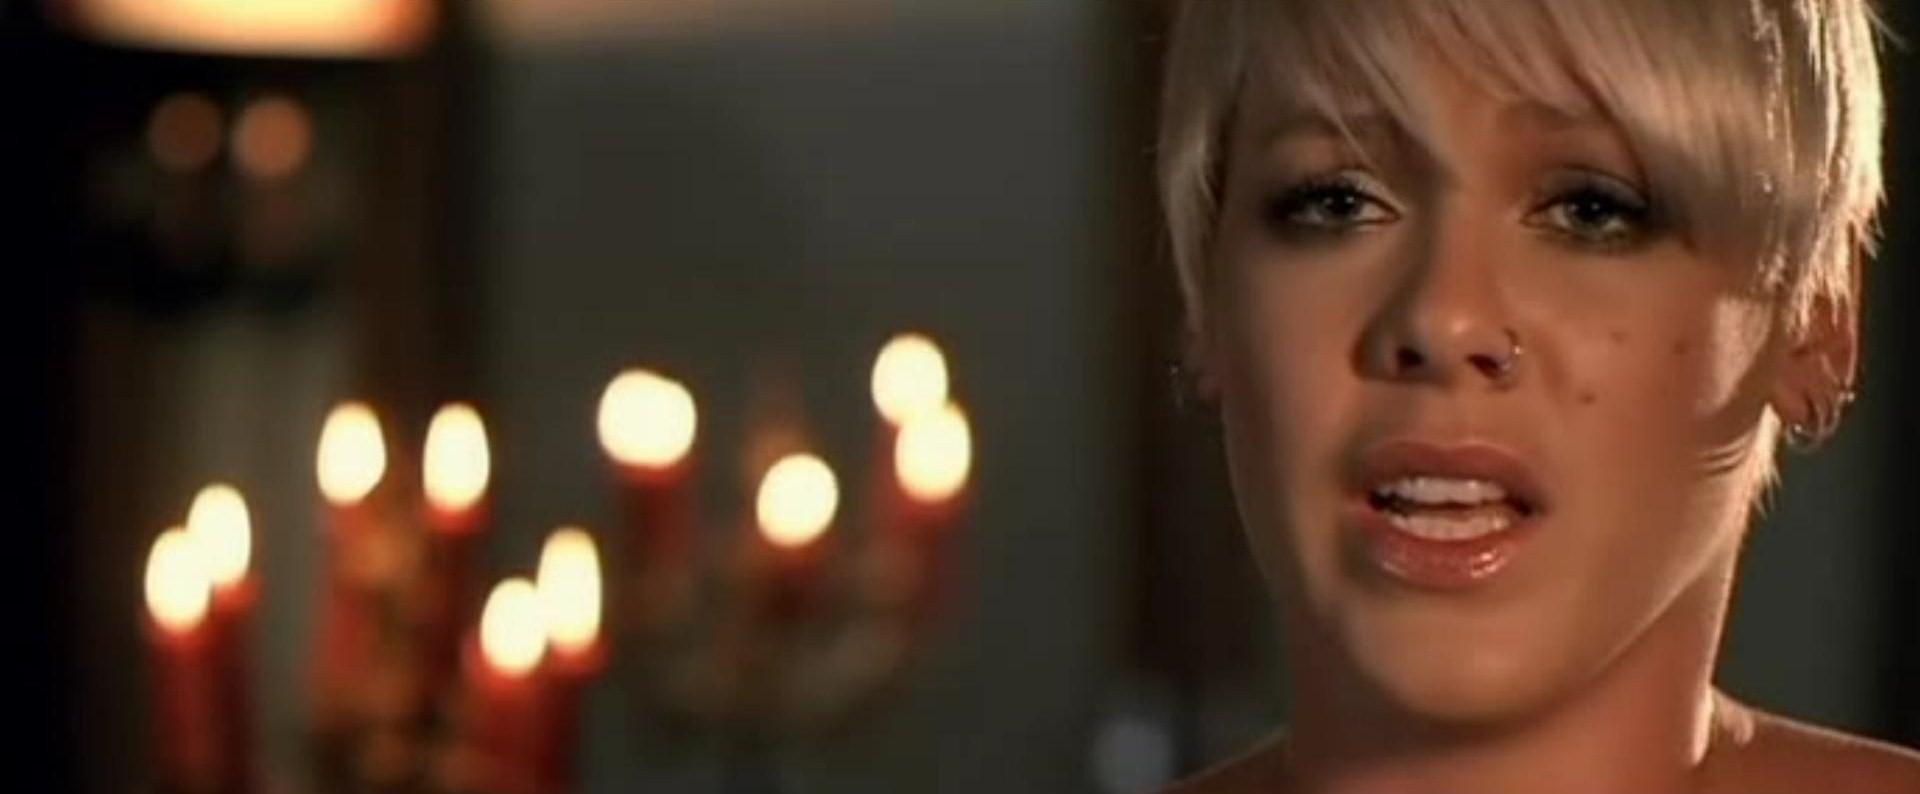 I Don't Believe You – P!nk